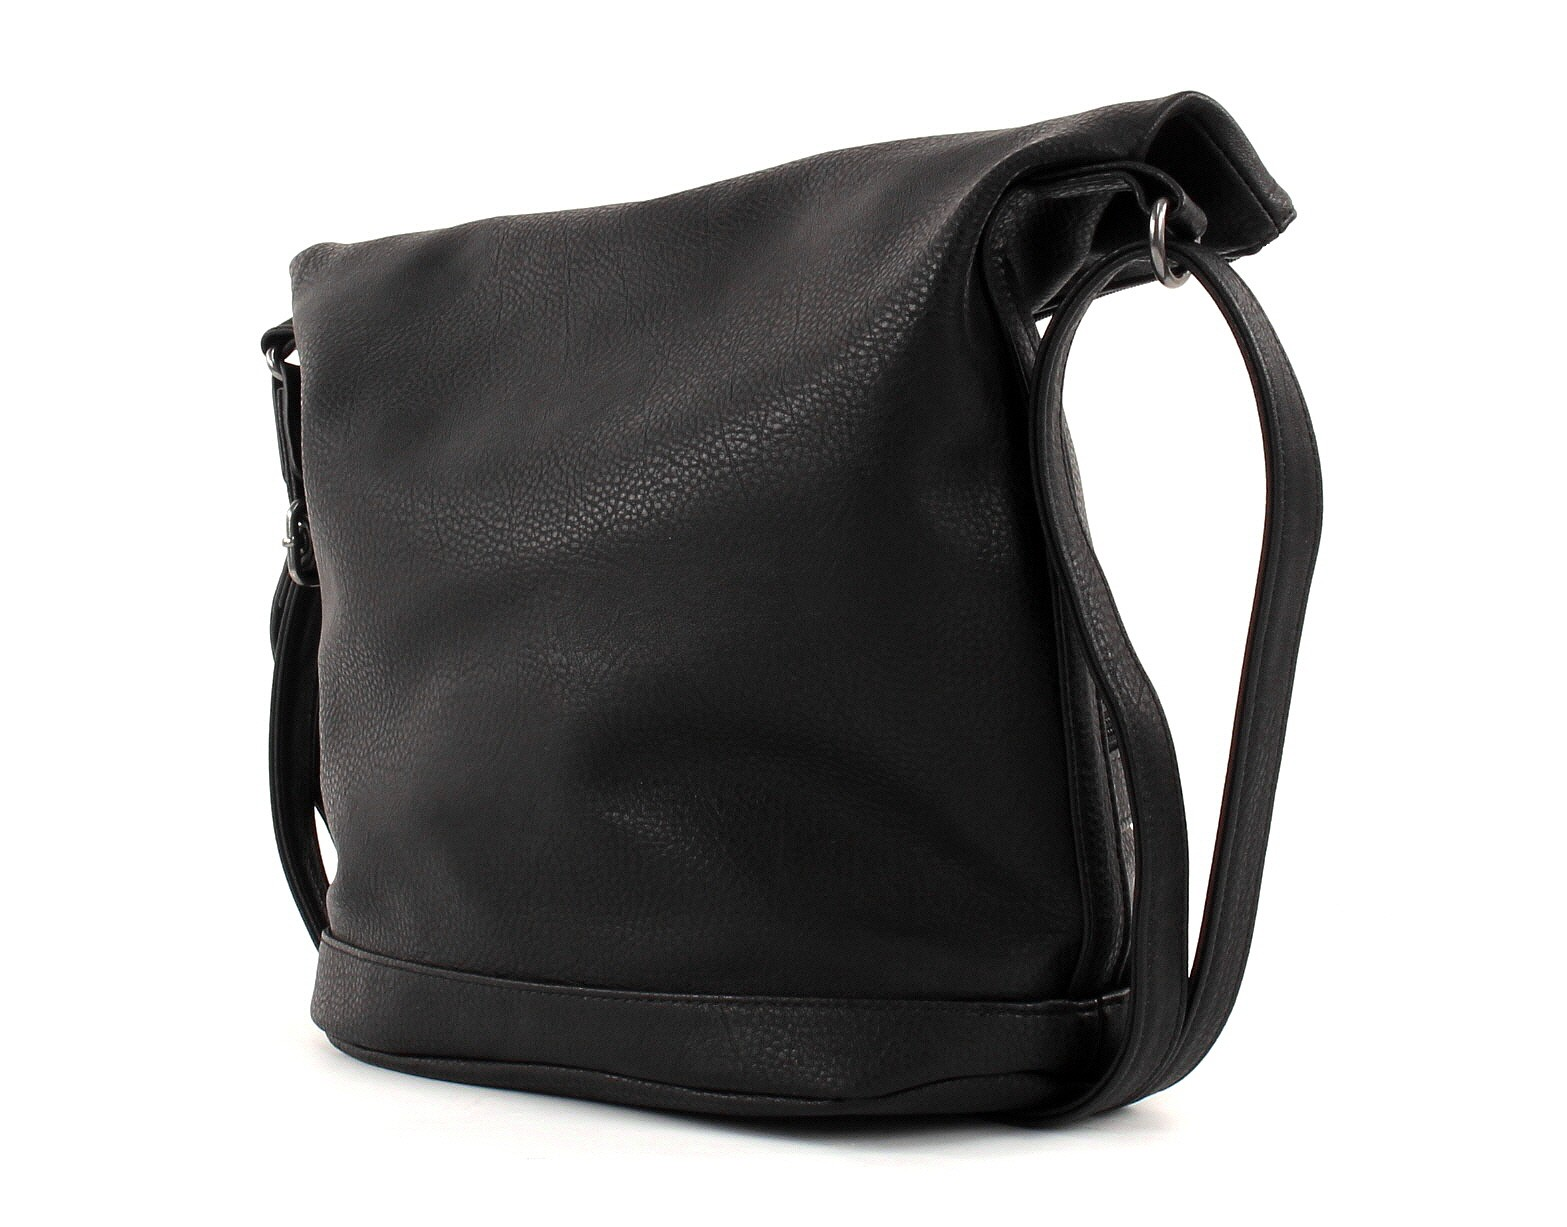 Tamaris SMIRNE Hobo Bag Black